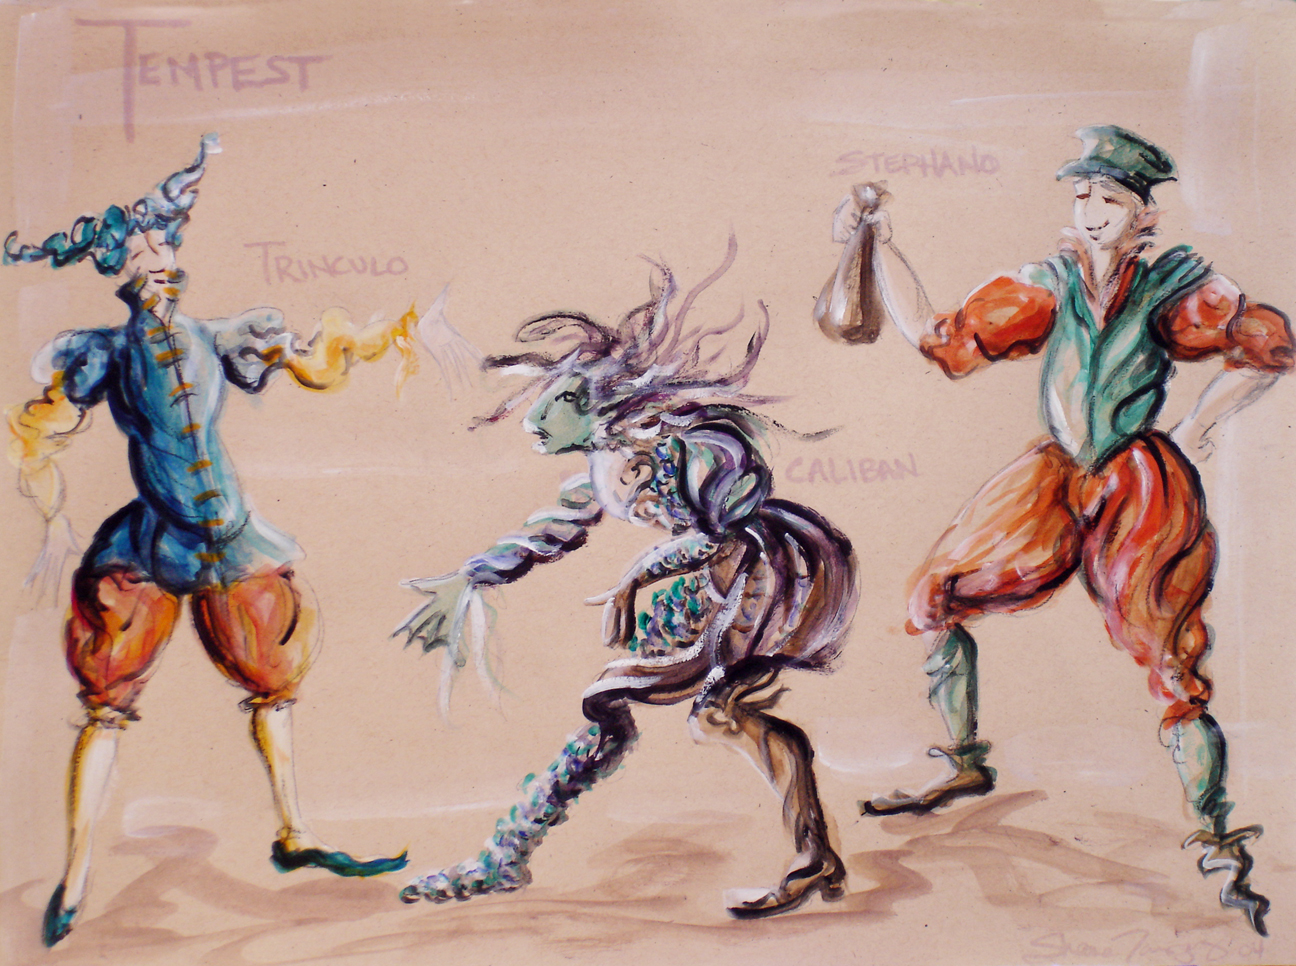 Concept Rendering - Trinculo and Caliban, The Tempest